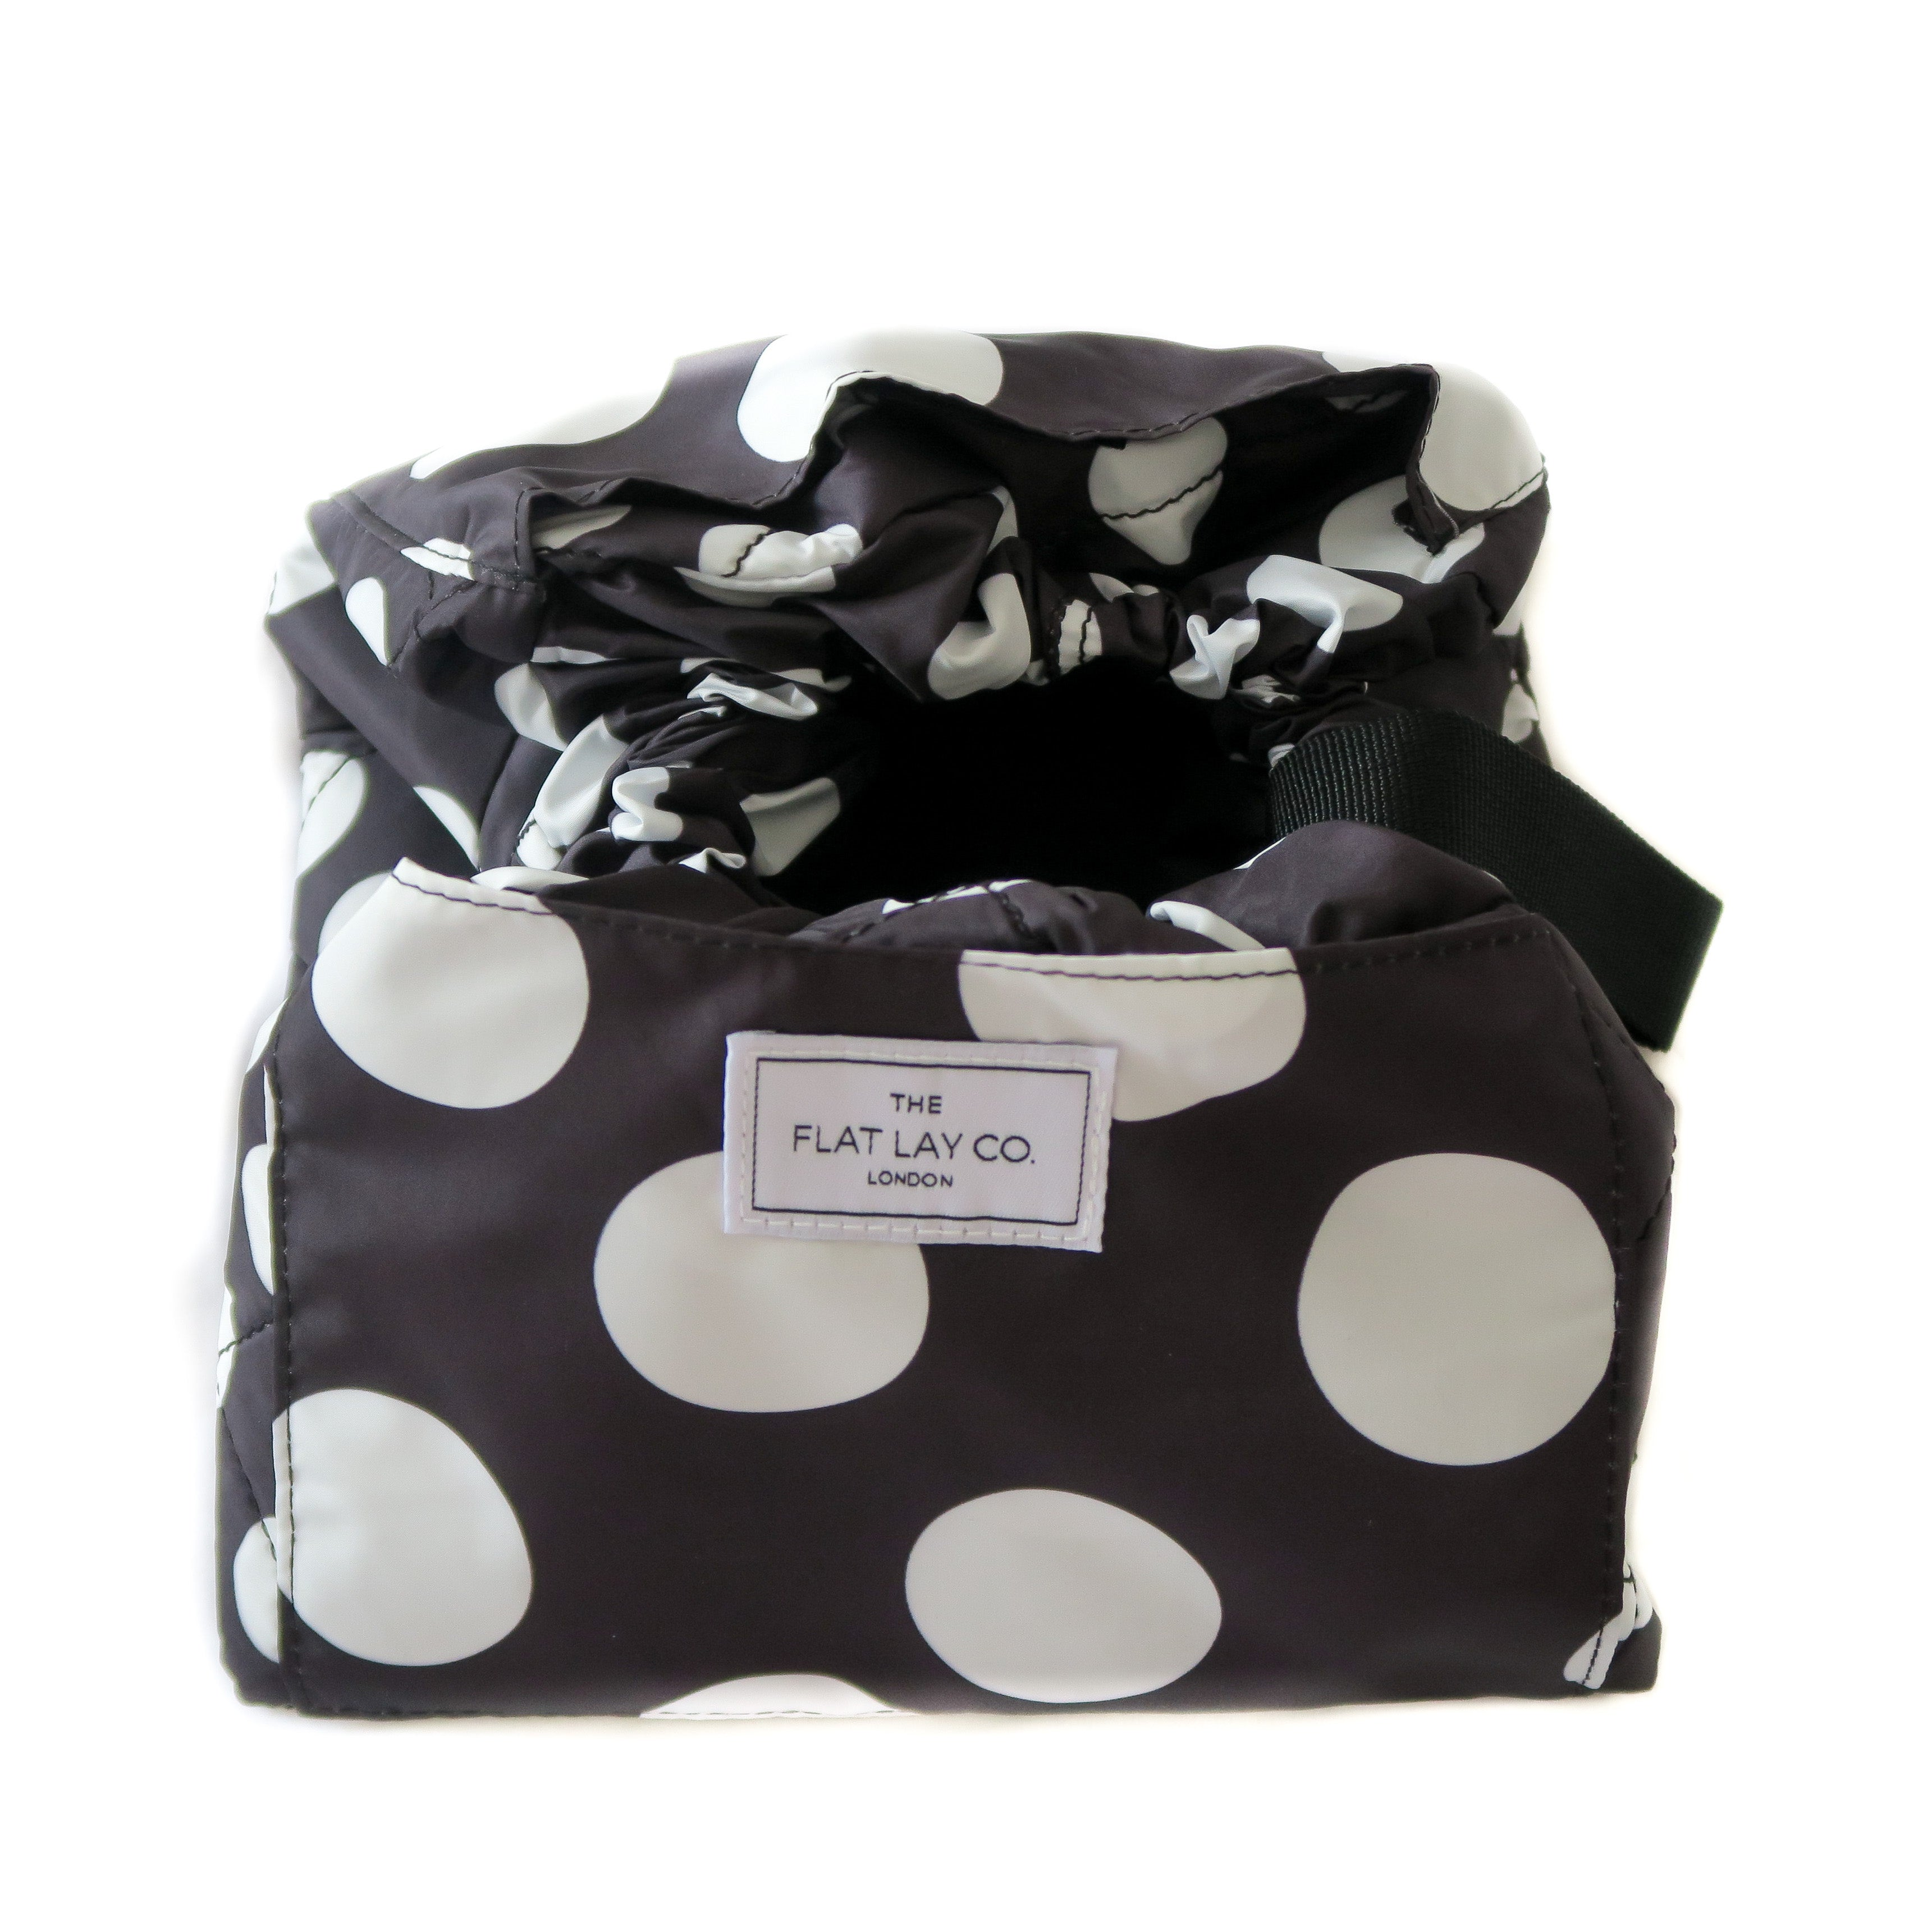 Double Spots Open Flat Makeup Bag 50cm